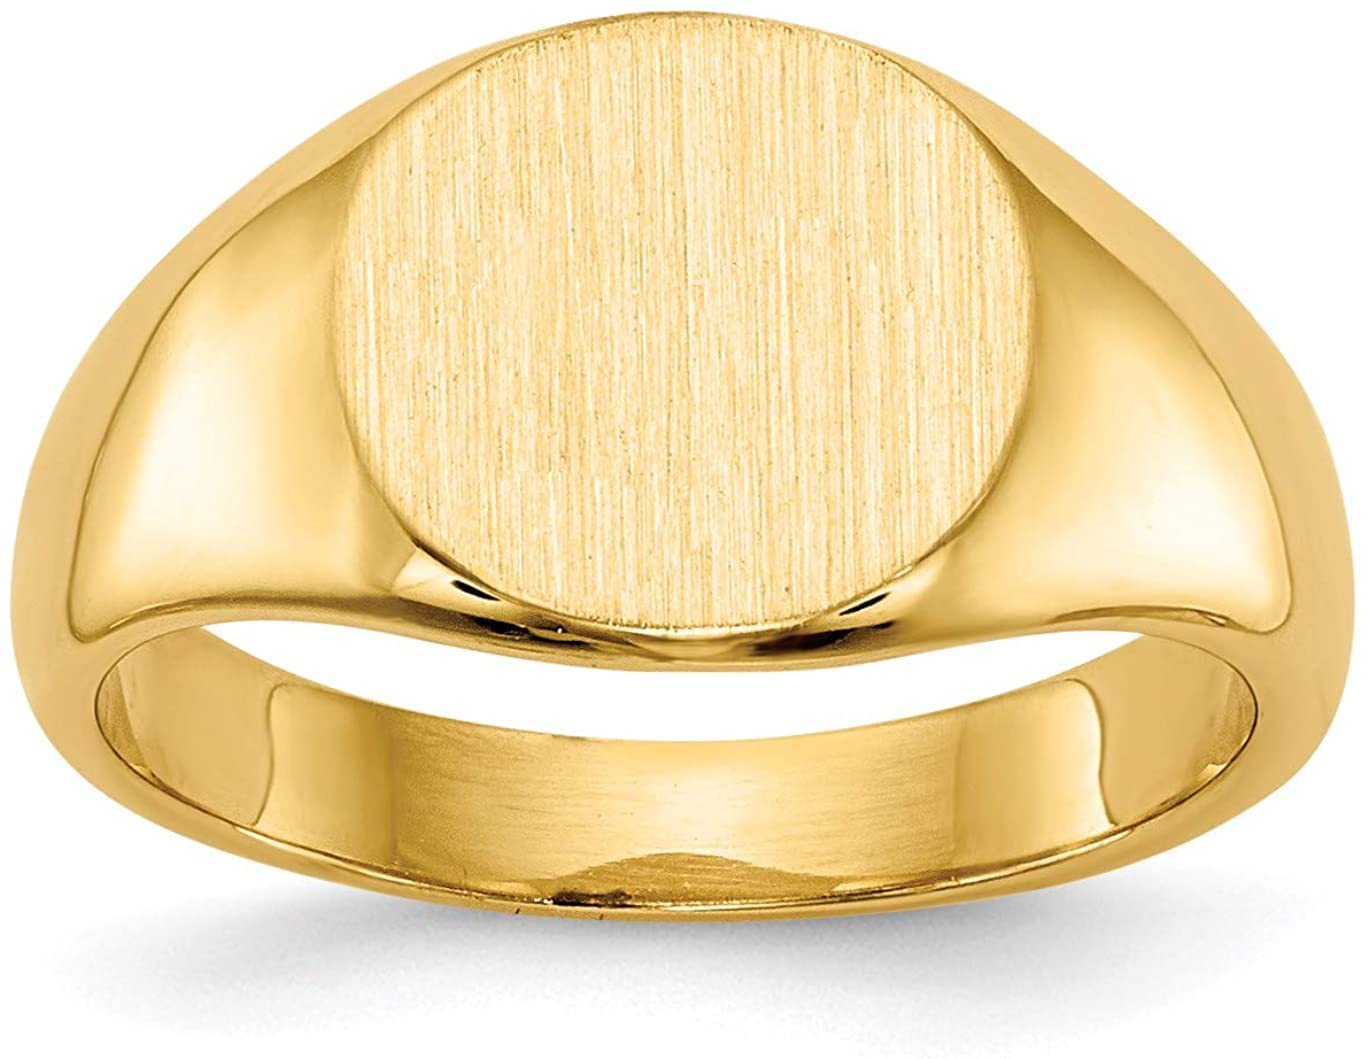 Bonyak Jewelry 14k 7.5x9.0mm Closed Back Child's Signet Ring in 14k Yellow Gold - Size 3